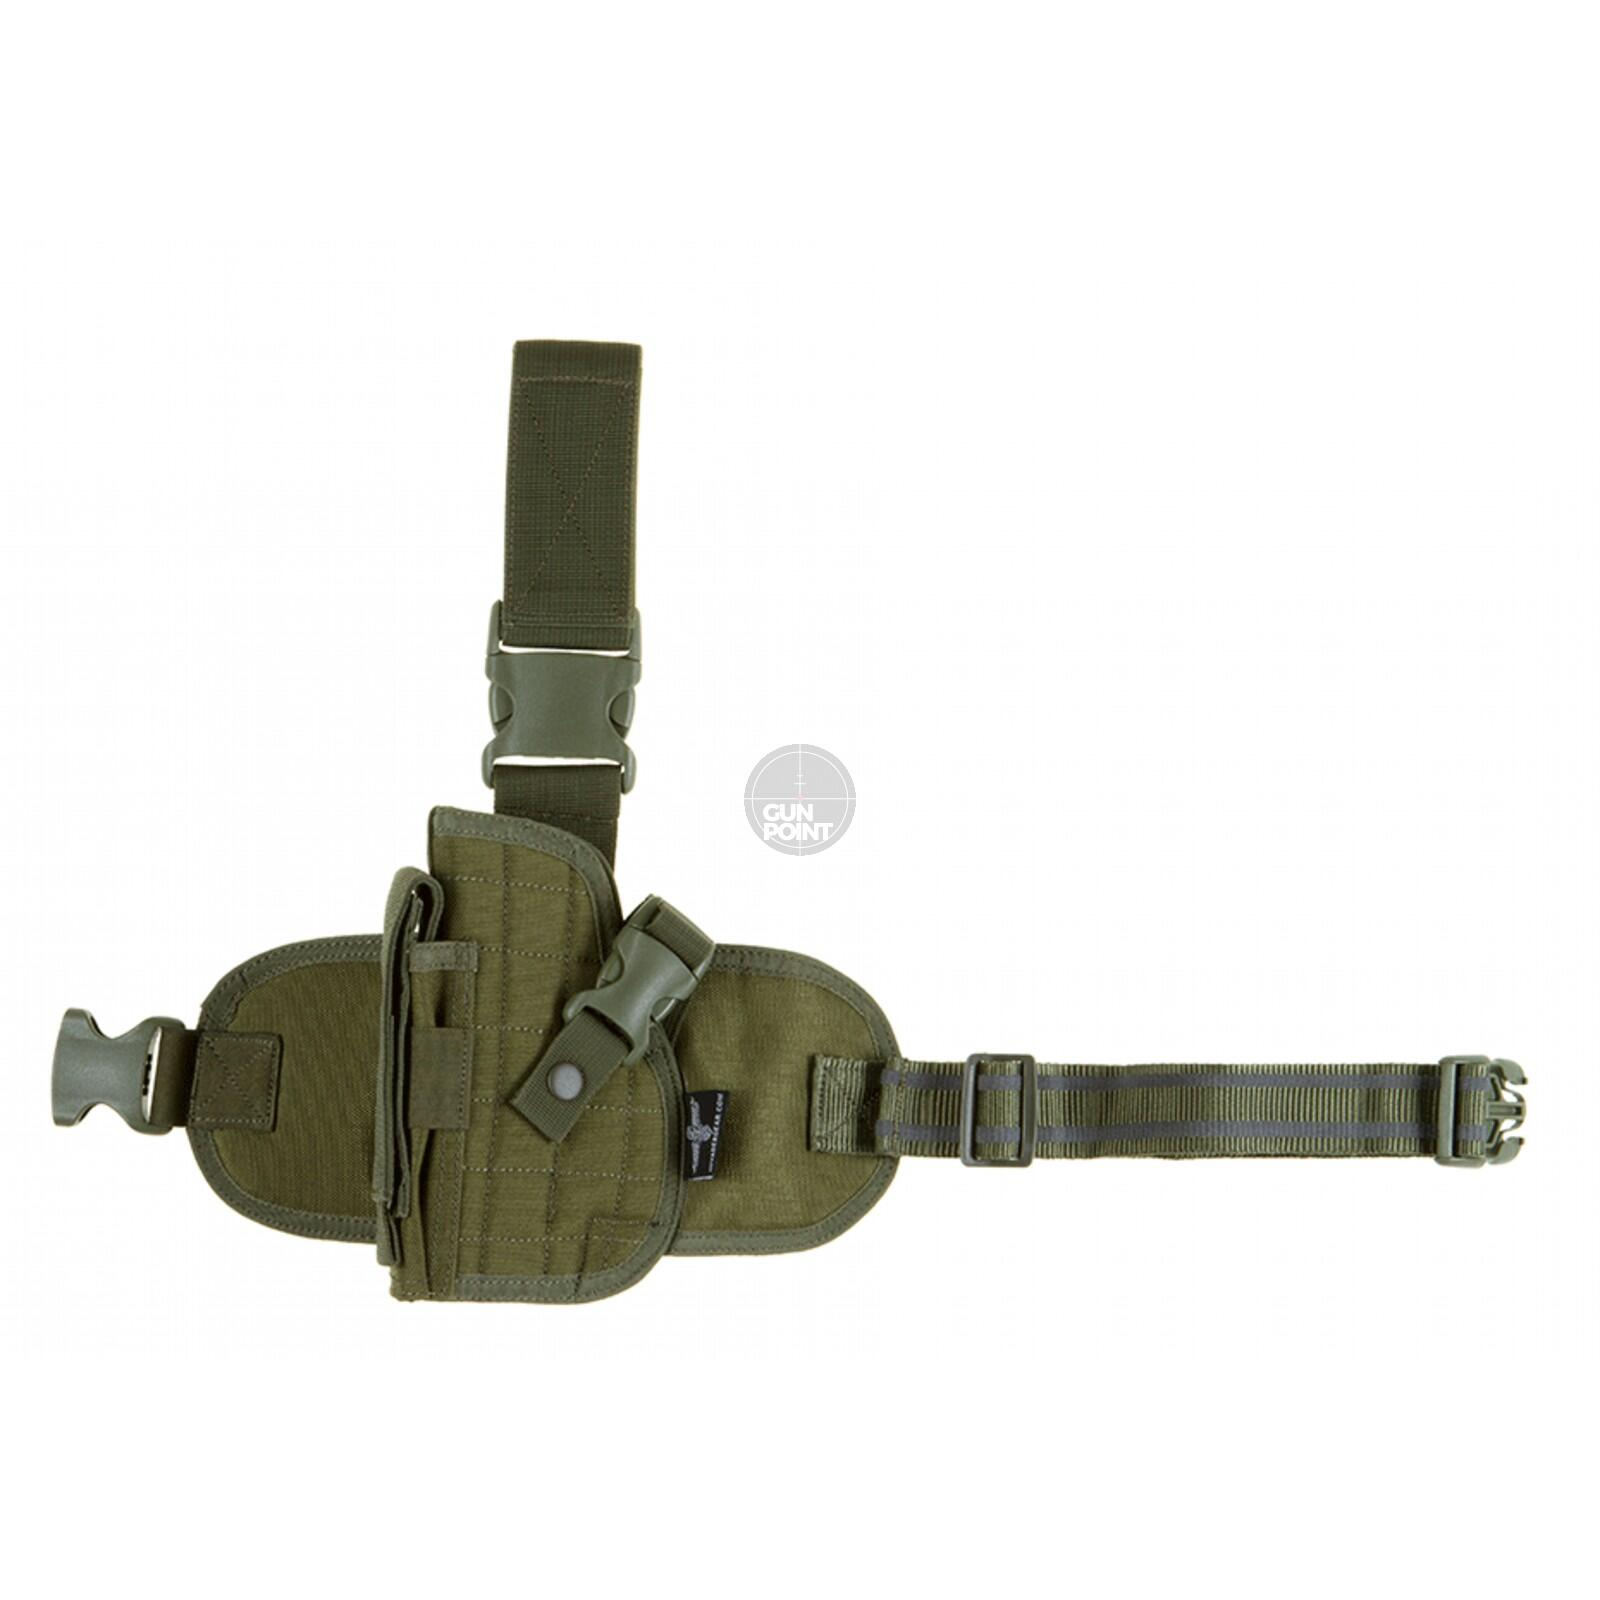 Invader Gear Dropleg Holster Left OD